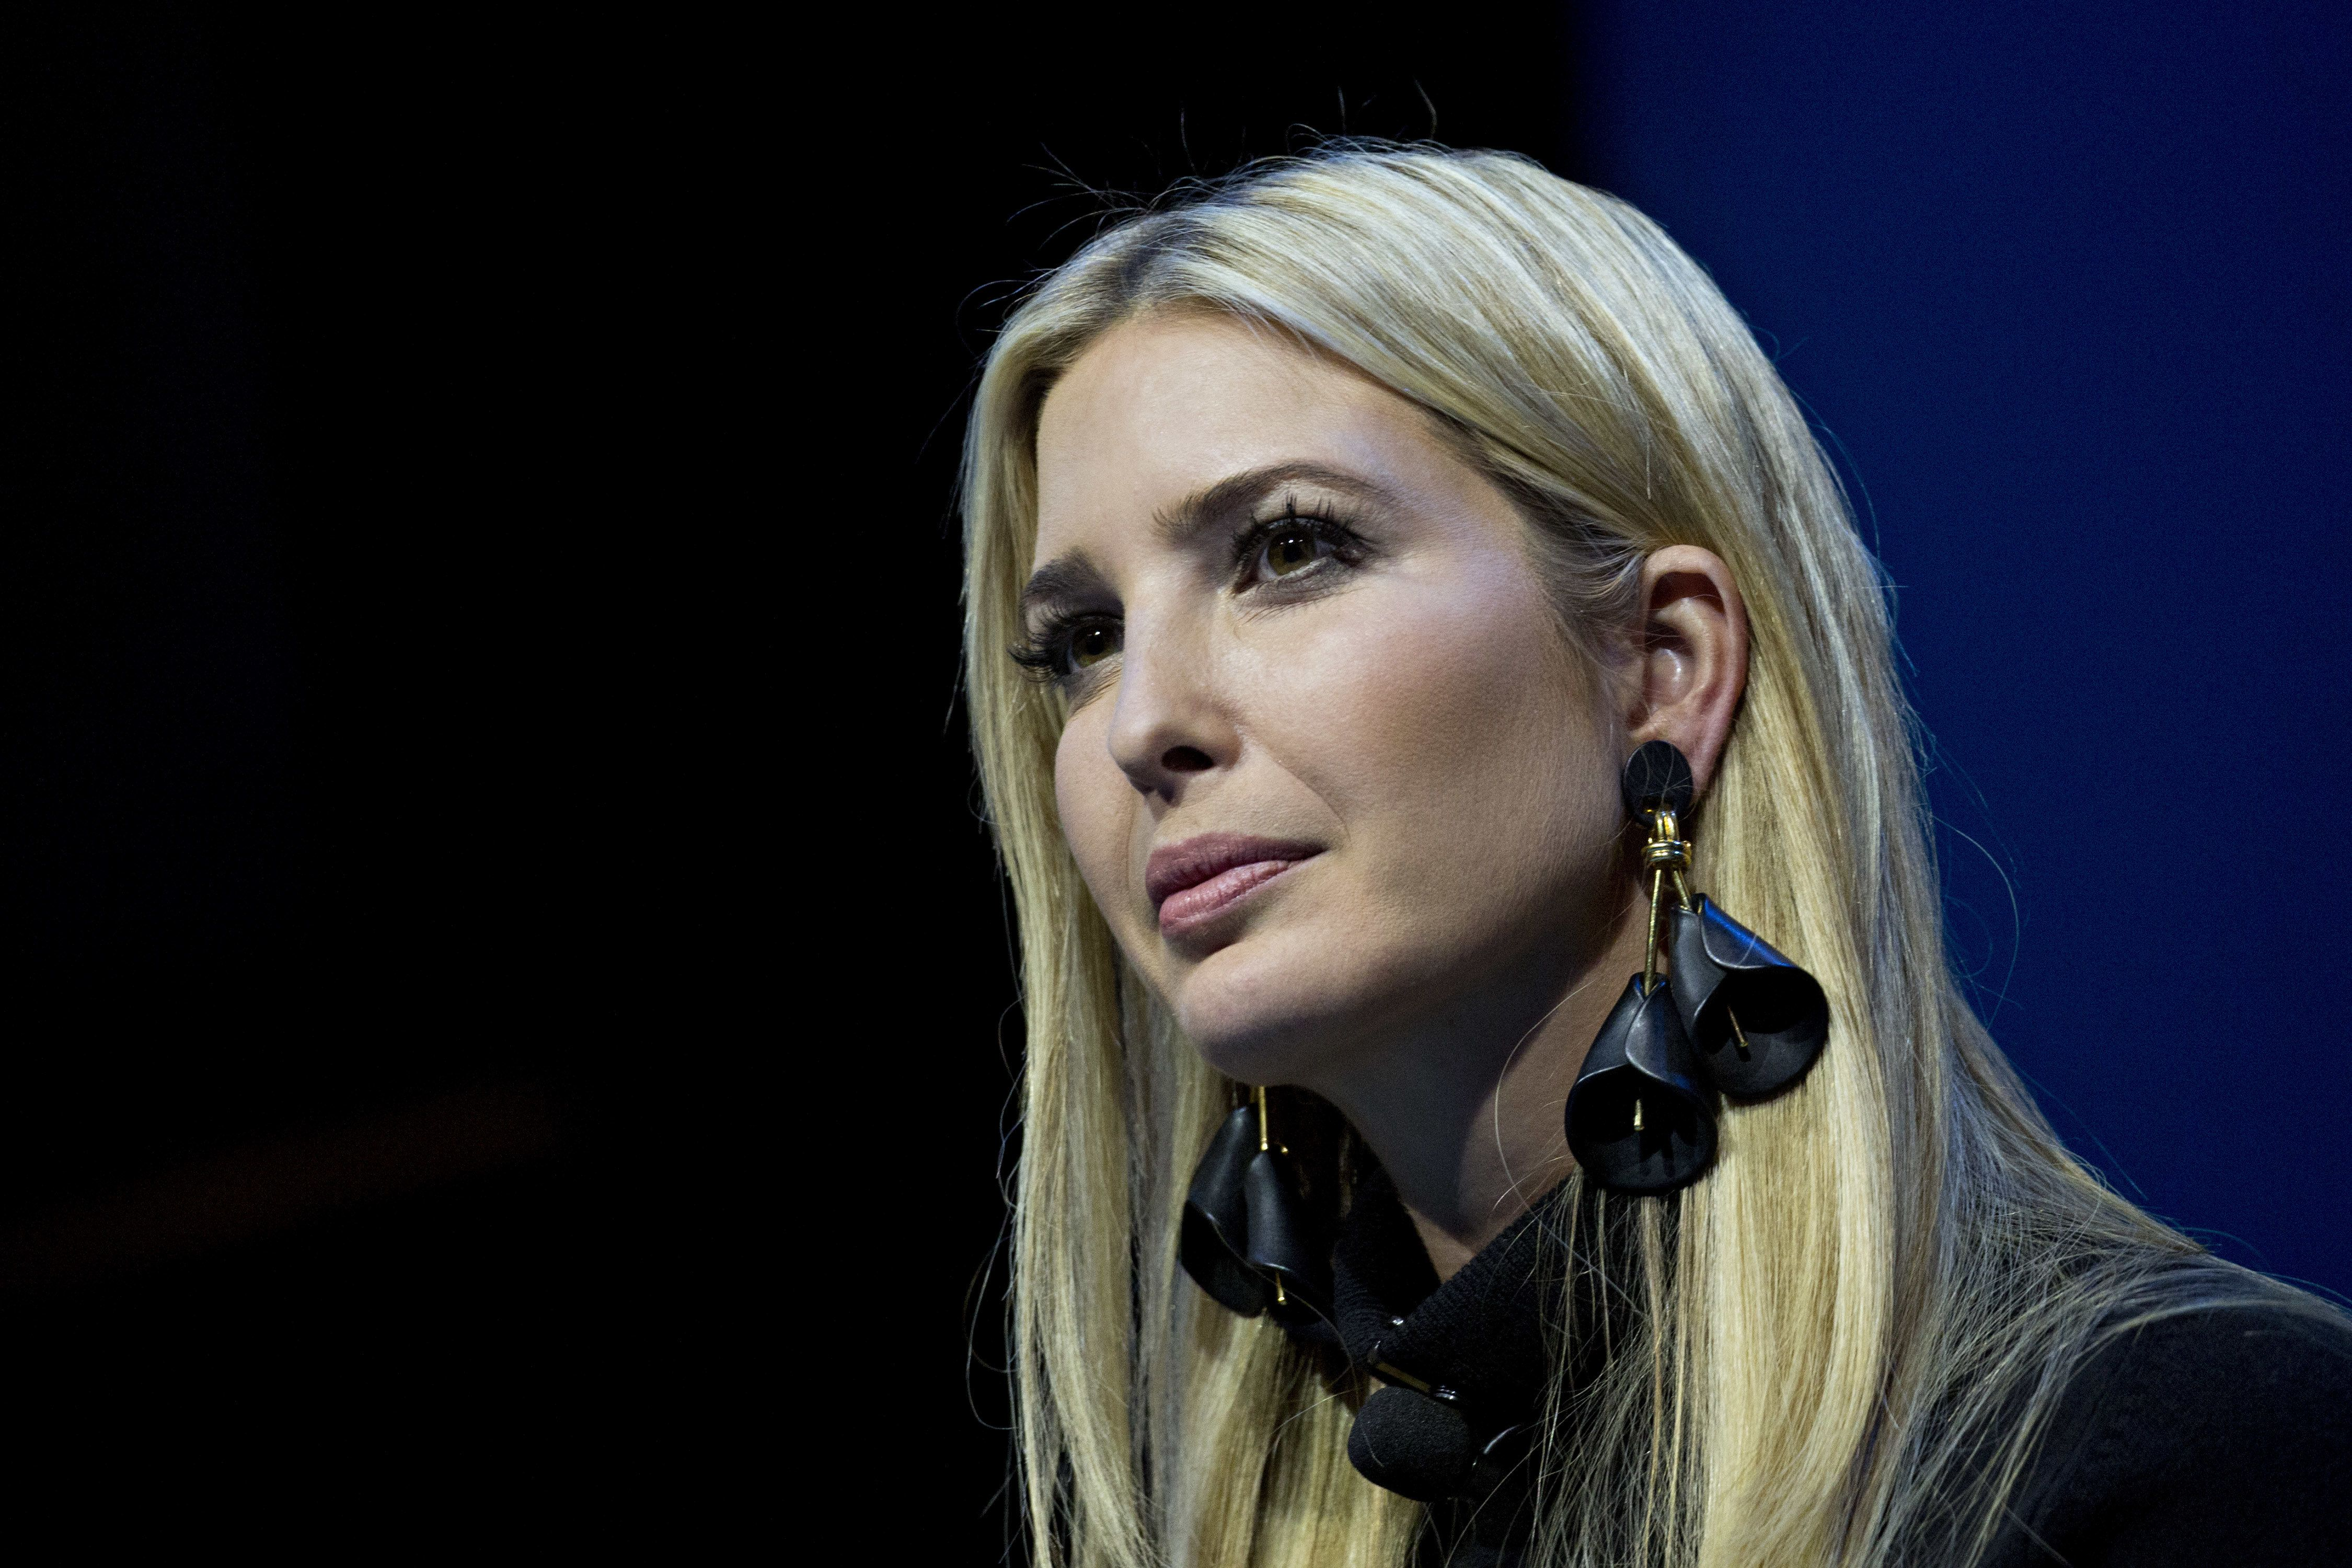 Ivanka Trump, assistant to U.S. President Donald Trump, listens during a Business Roundtable CEO Innovation Summit discussion in Washington, D.C., U.S., on Thursday, Dec. 6, 2018. The summit features discussions with Americas top chief executive officers, government leaders and industry experts on ideas and policies. Photographer: Andrew Harrer/Bloomberg via Getty Images